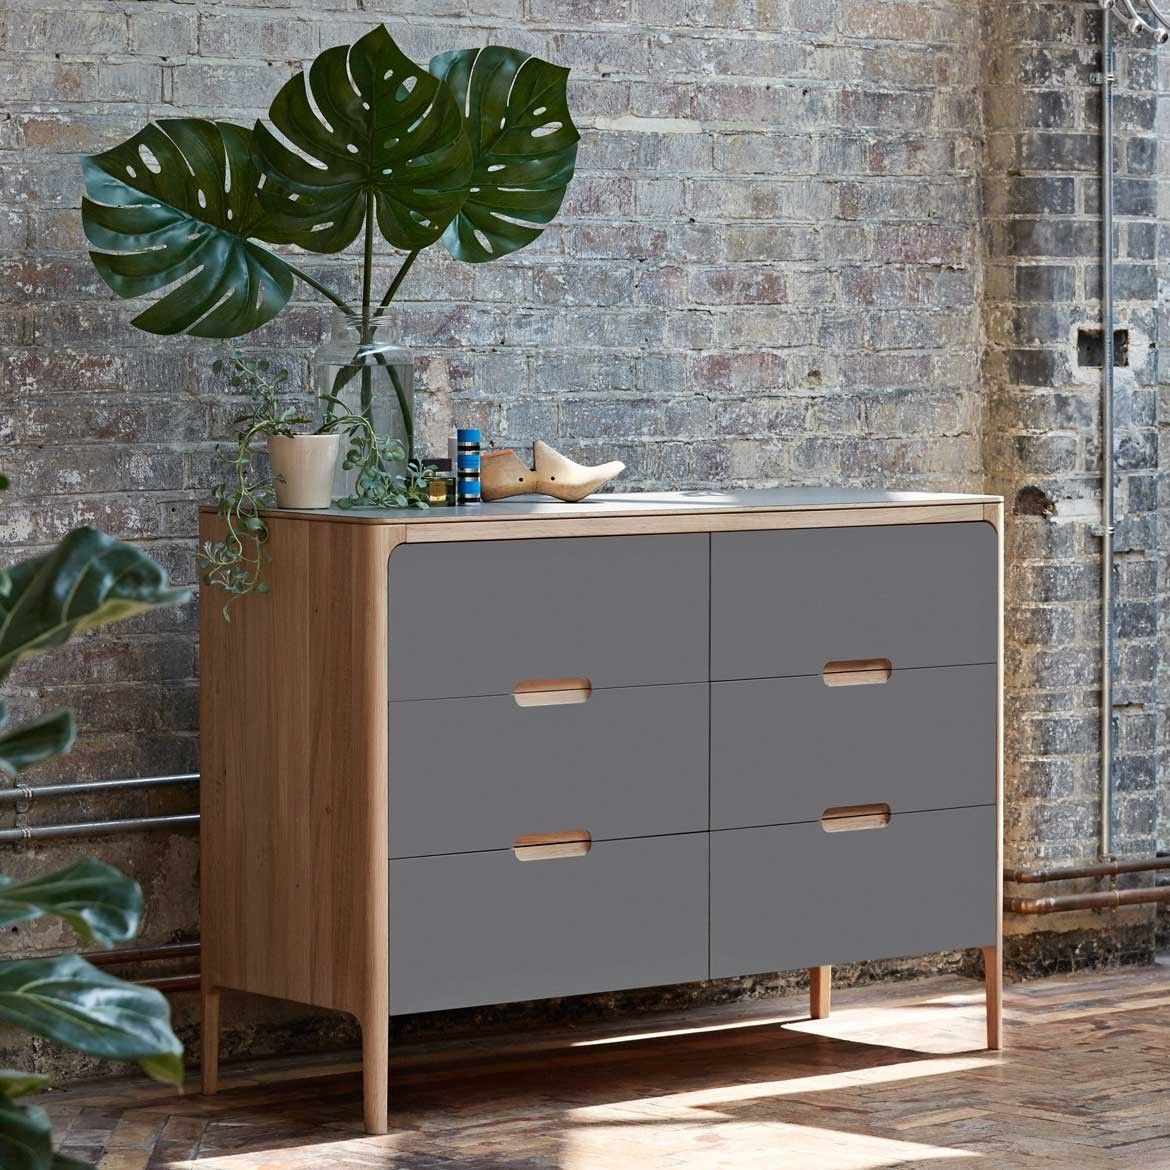 Best Como 6 Drawer Low Chest Of Drawers Chest Of Drawers 640 x 480